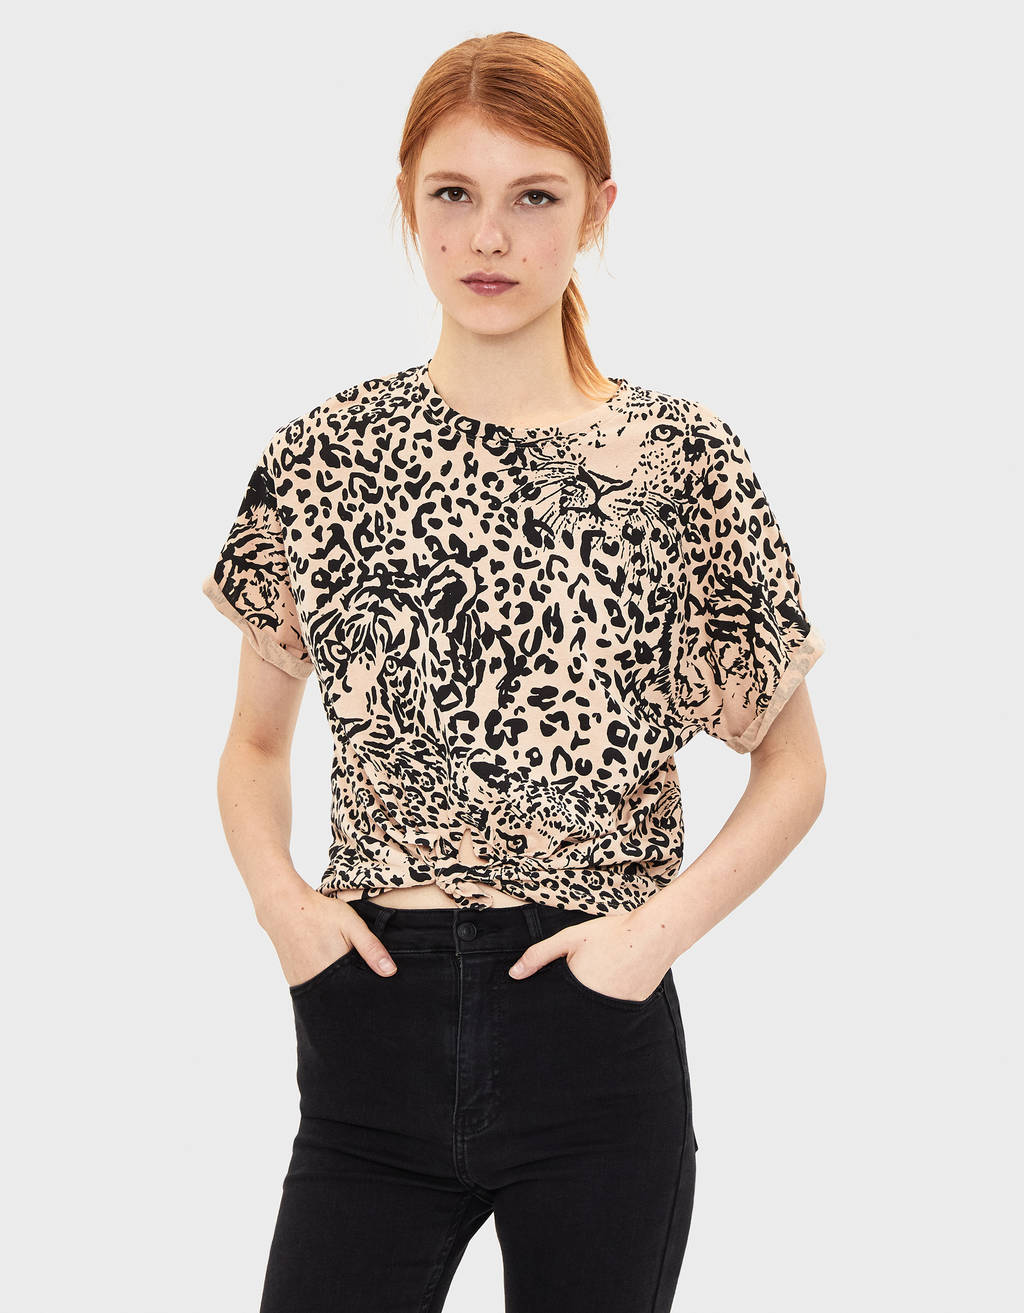 cdd0fc56c New - COLLECTION - WOMEN - Bershka Ireland